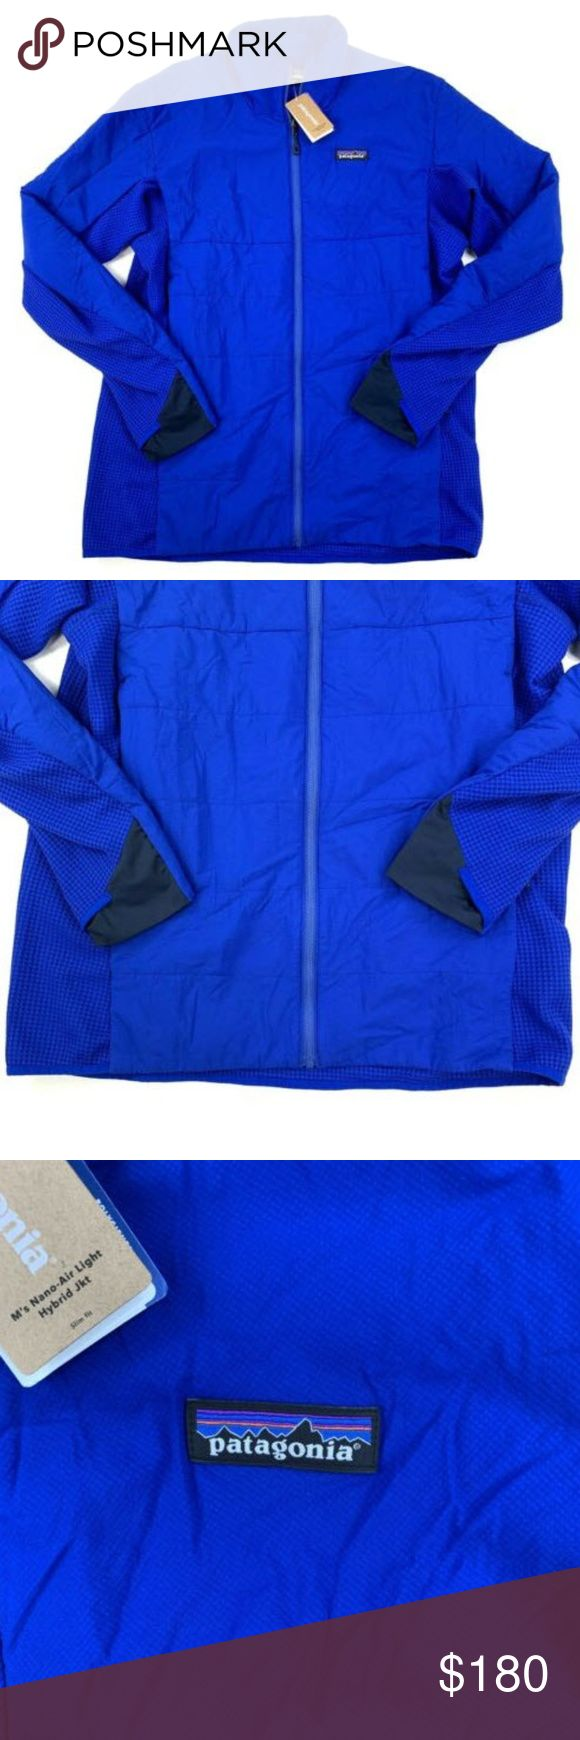 Patagonia Nano Air Light Hybrid Jacket Mens XL Item